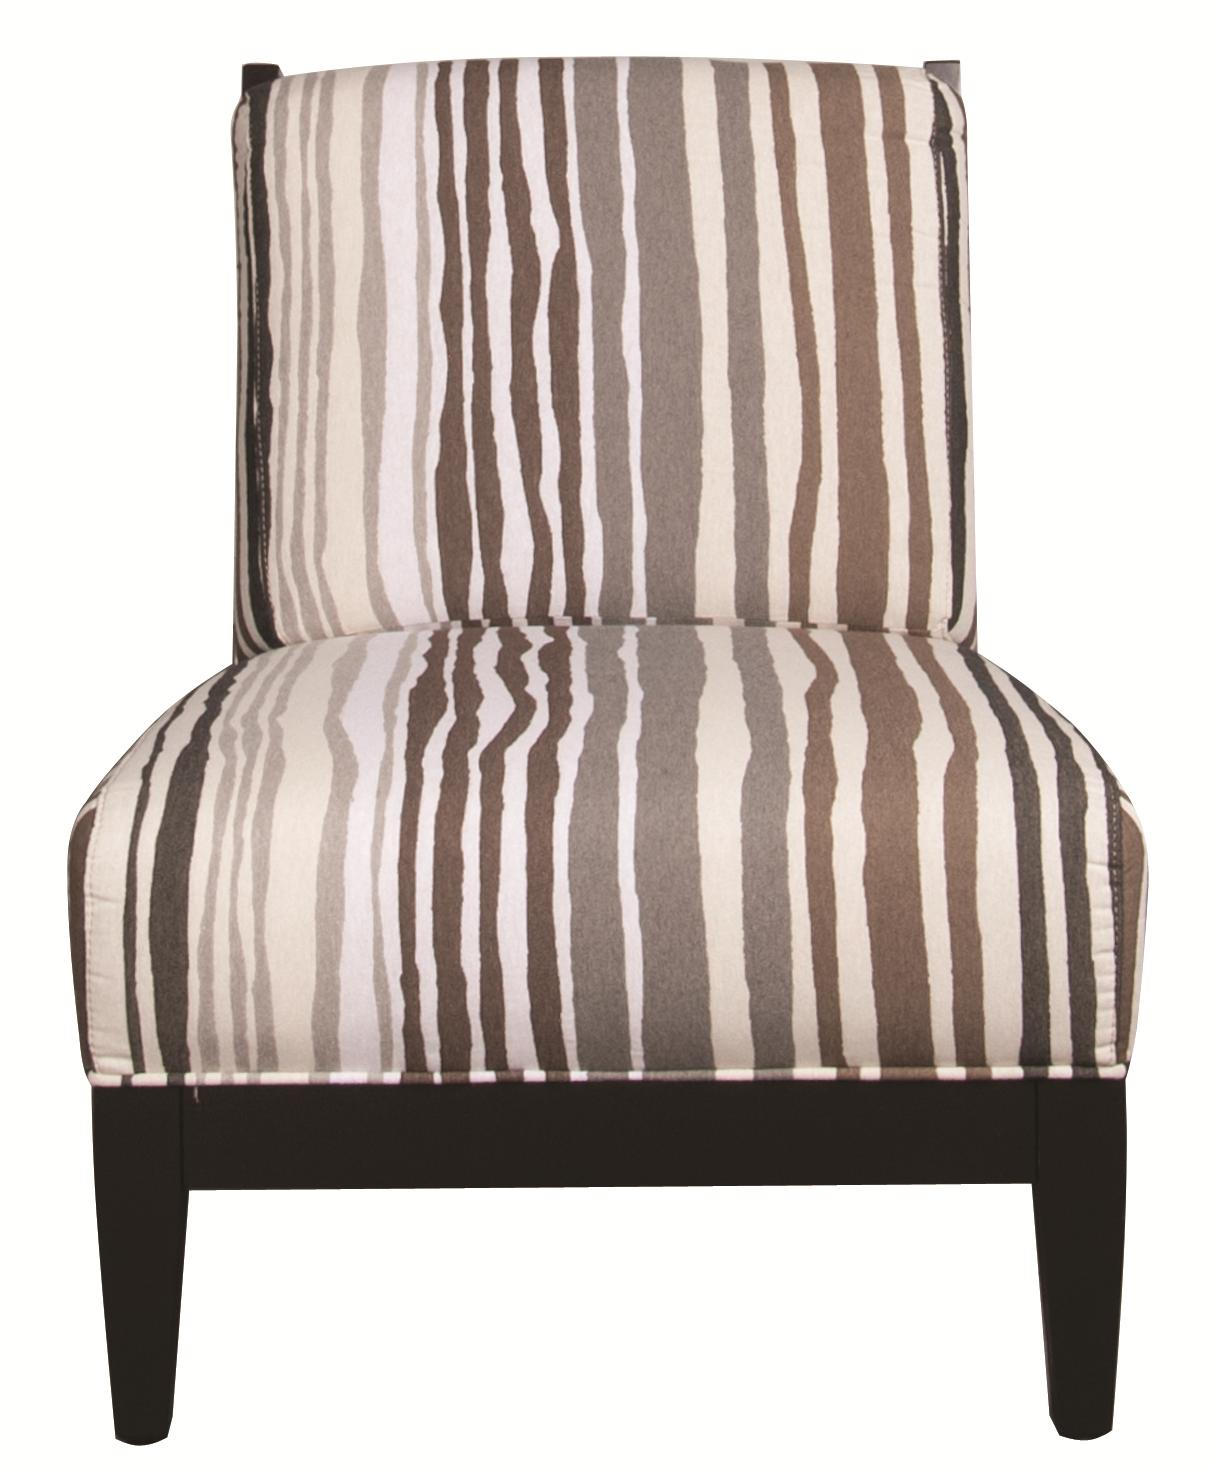 Morris Home Furnishings Tristan Tristan Accent Chair - Item Number: 110844277